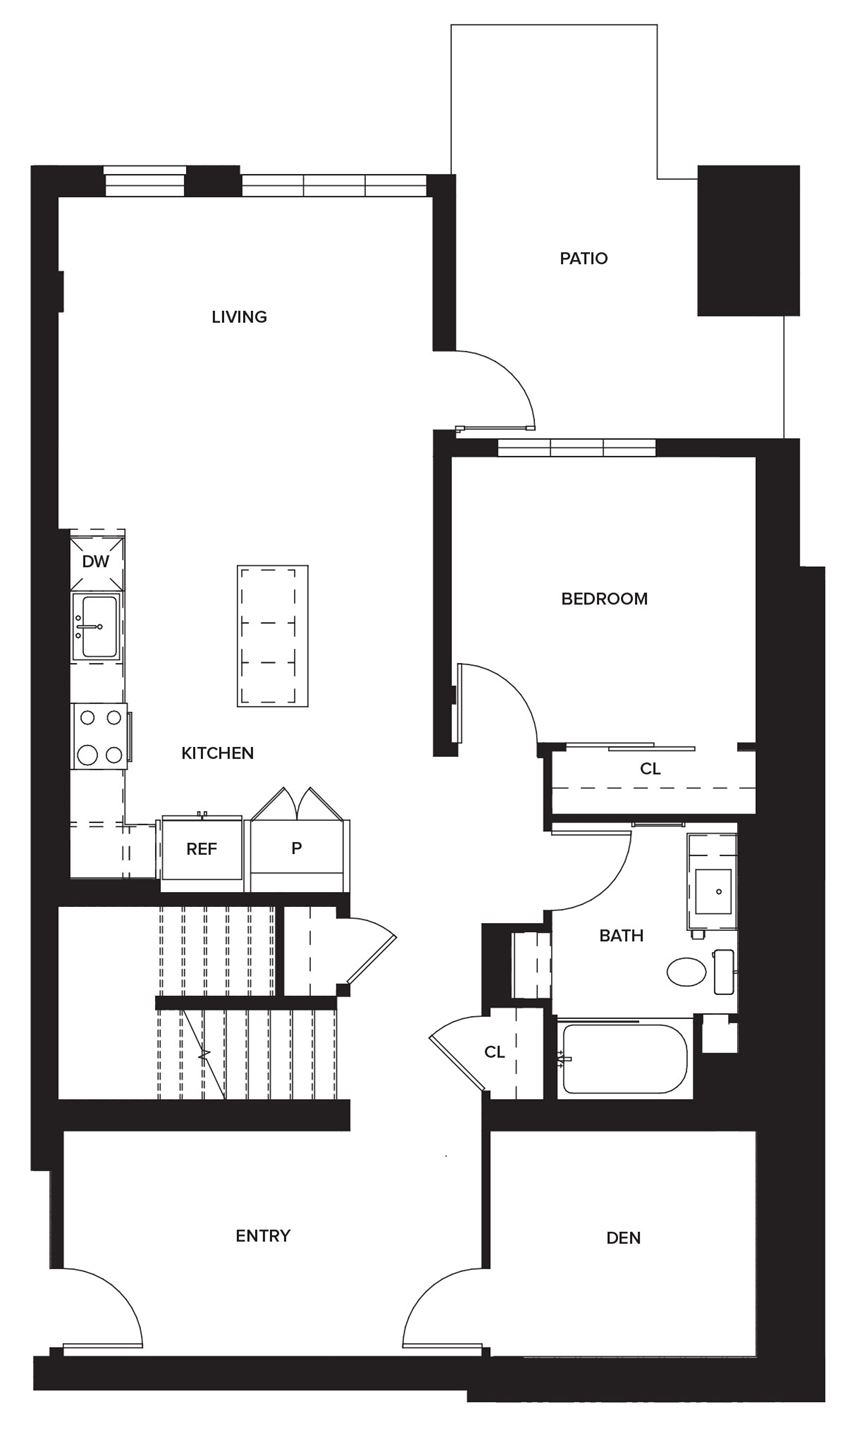 Townhome1c (First Floor)